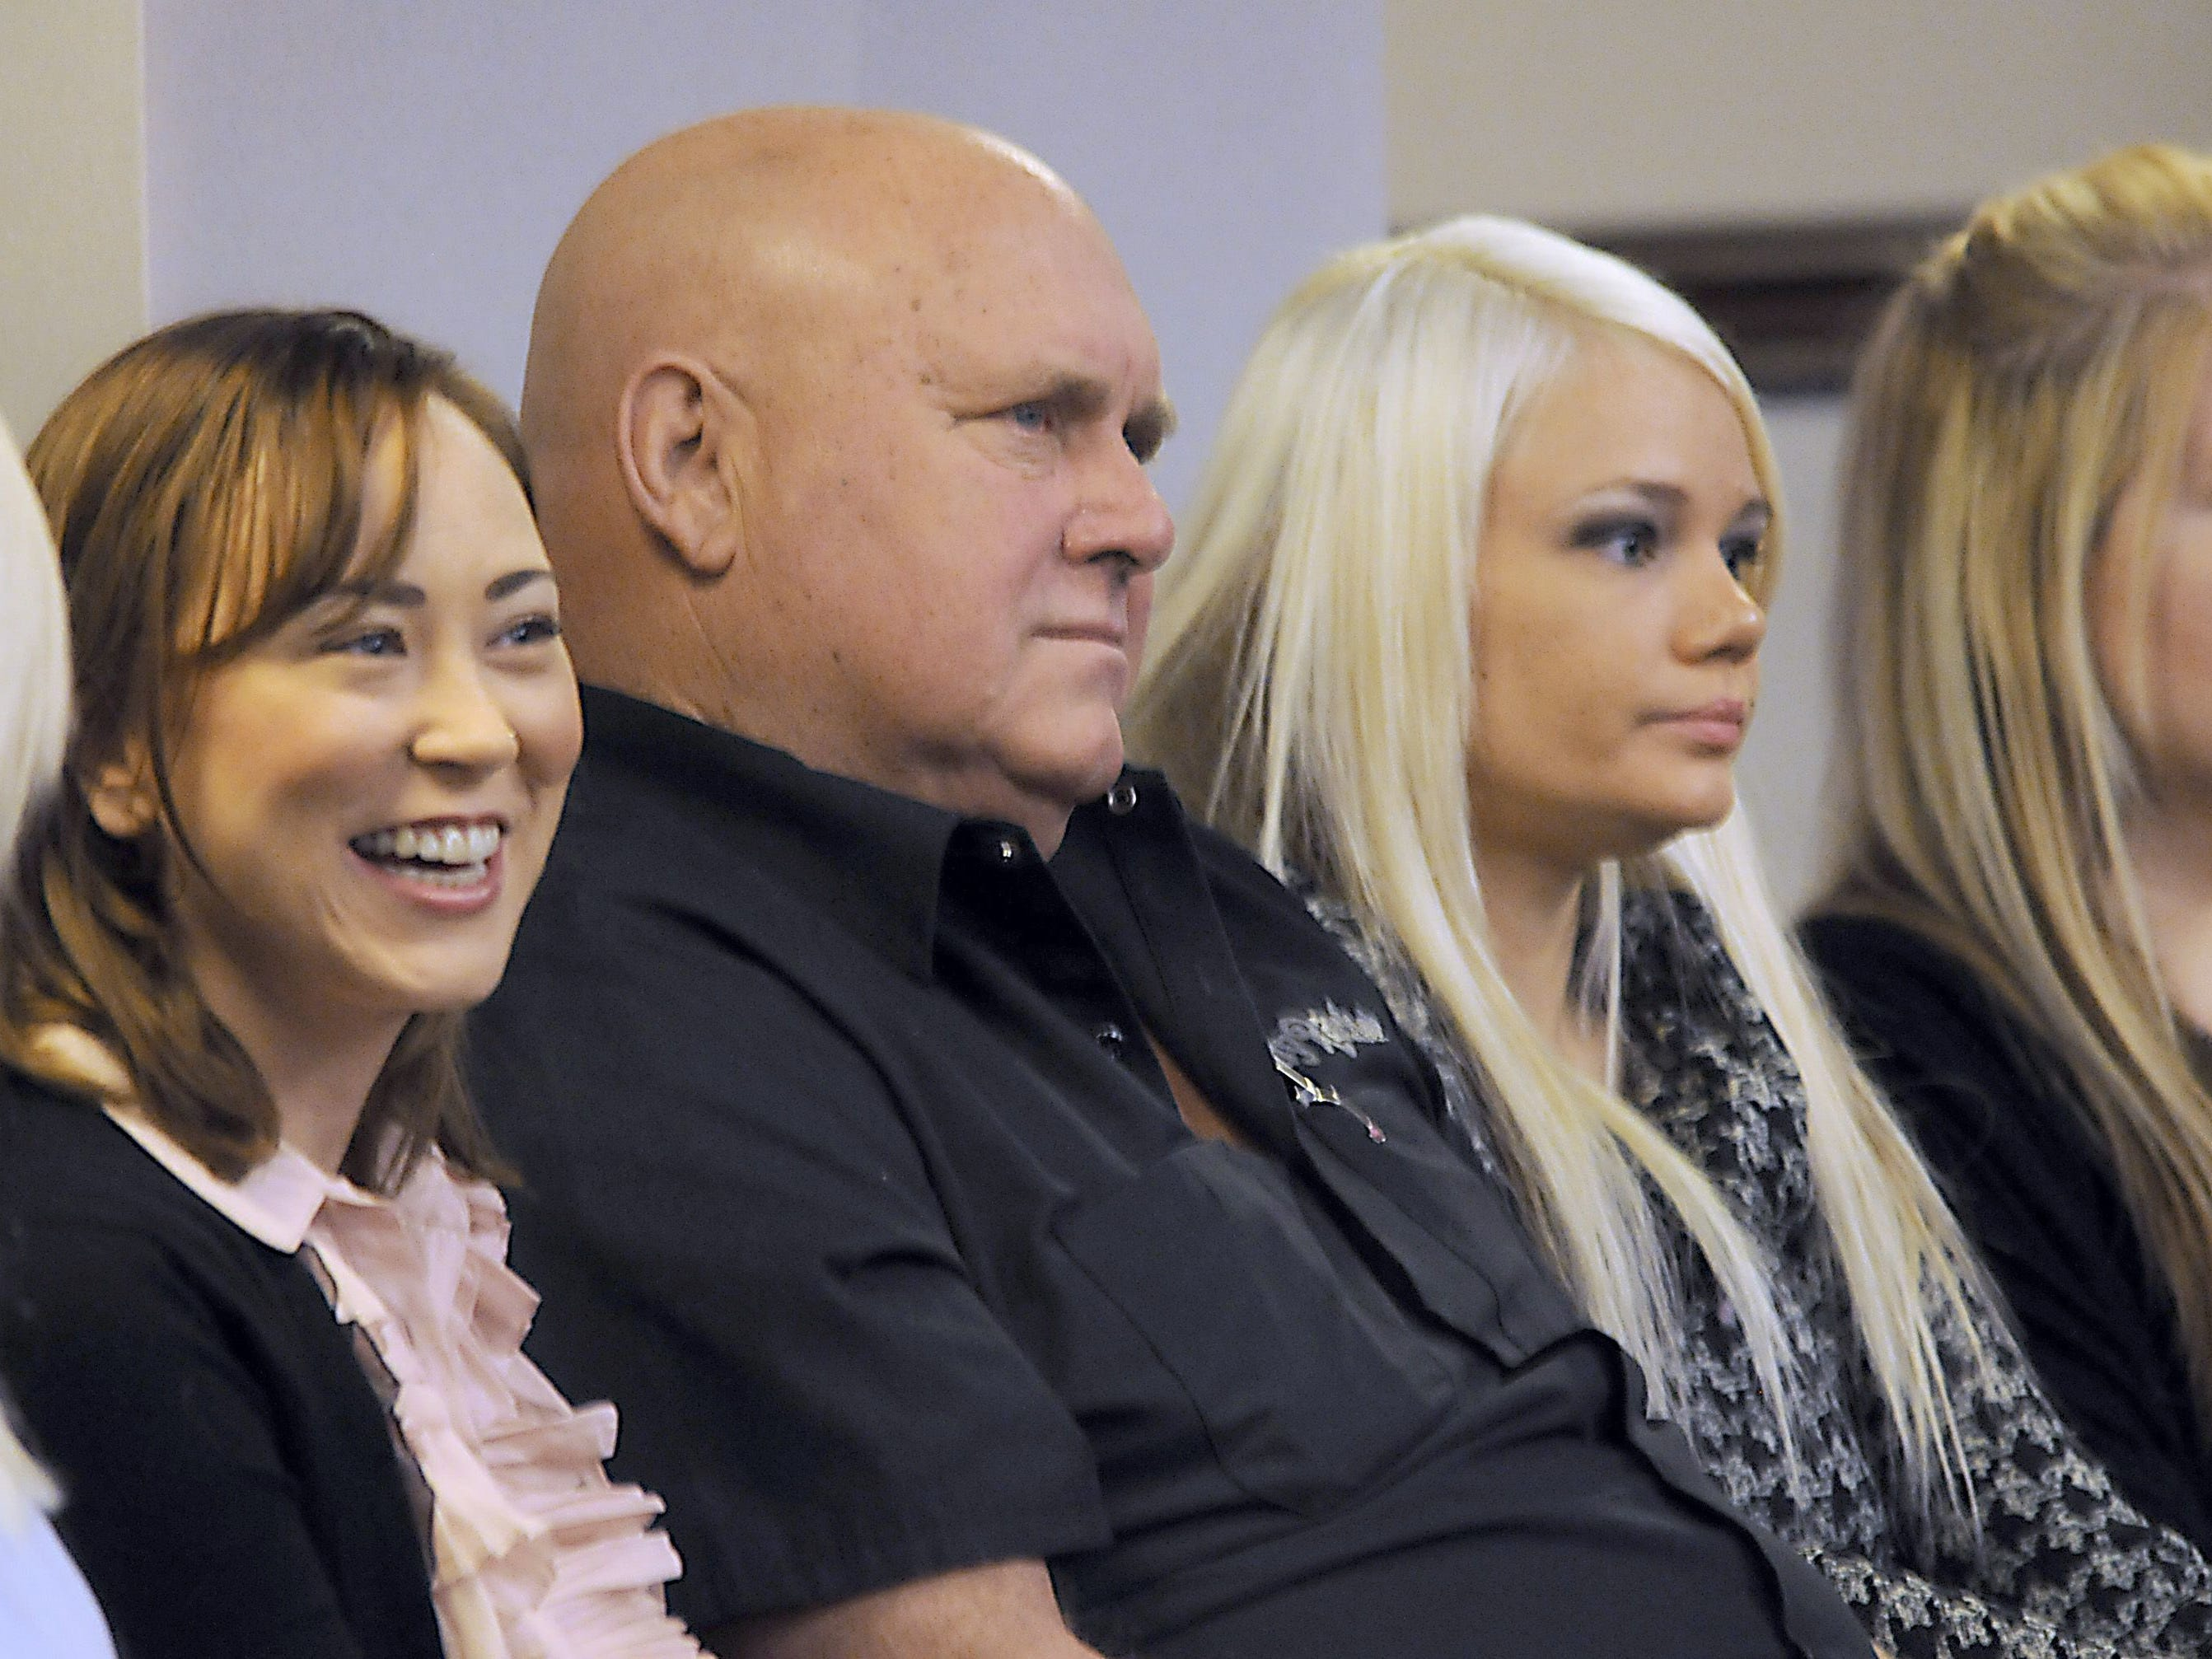 Dennis Hof, owner of the Moonlite Bunny Ranch and other brothels sits in the Assembly chambers of the Nevada Legislature in 2011, along with some of the women who worked there, to listen to Harry Reid tell the Legislature that prostitution should be outlawed.  Marilyn Newton / RGJ file Dennis Hof, owner of the Moonlite Bunny Ranch and other brothels sits in the Assembly chambers of the Nevada Legislature Tuesday Feb. 22, 2011, along with some of his girls, to listen to Harry Reid tell the Legislature that prostitution should be outlawed.